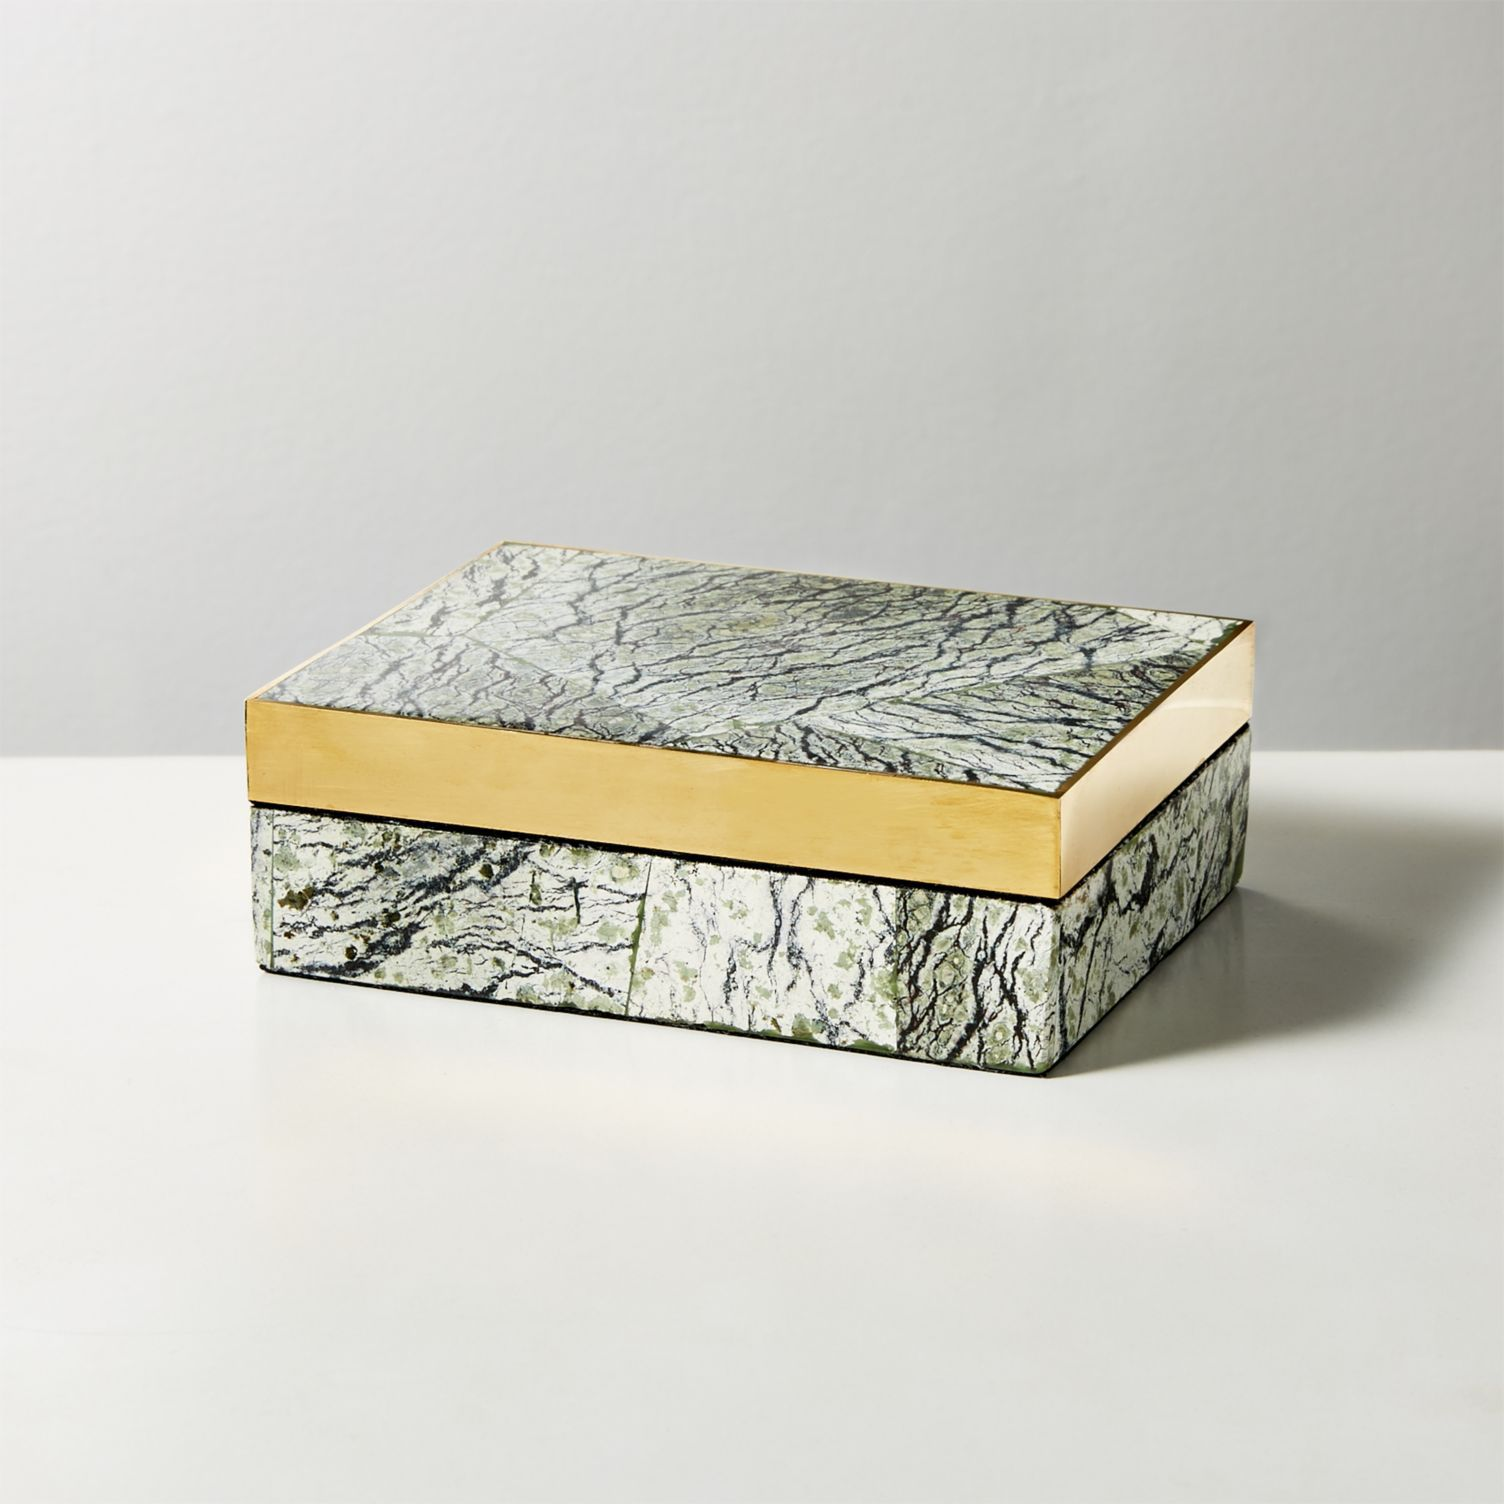 A stone box with gold trim by CB2.